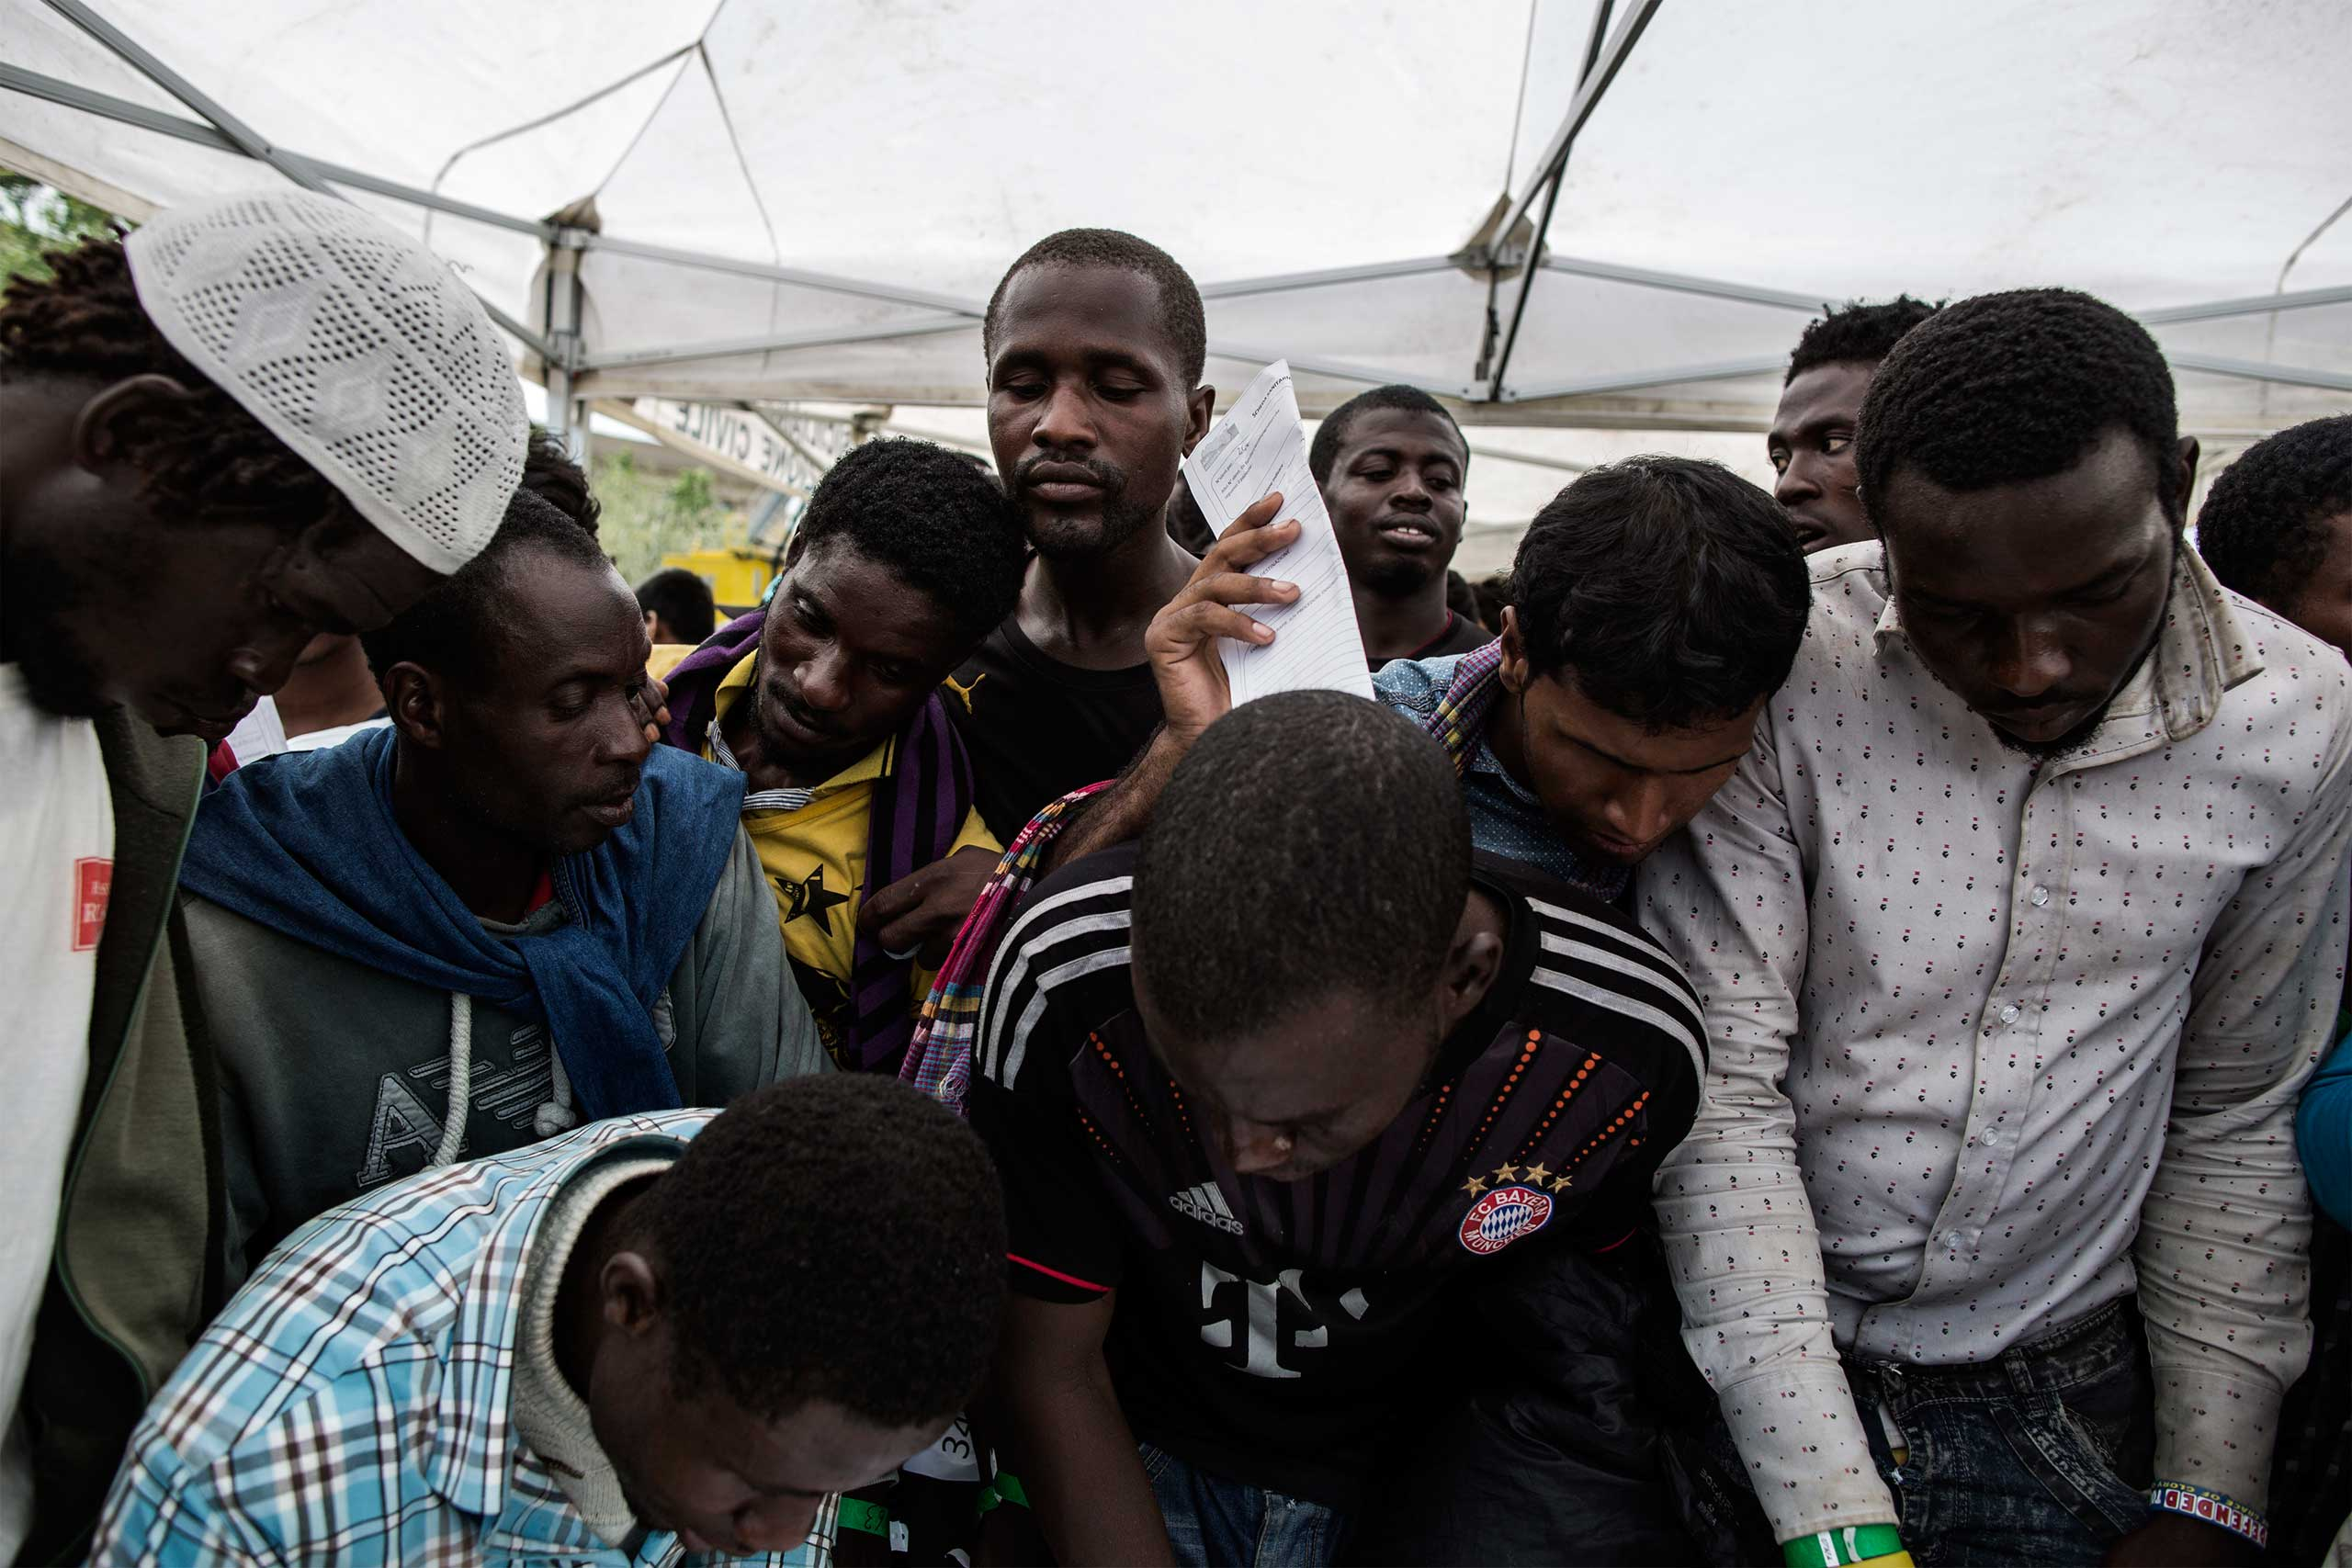 African migrants and refugeesregister in the town of Messina, Sicily.  July 2015.